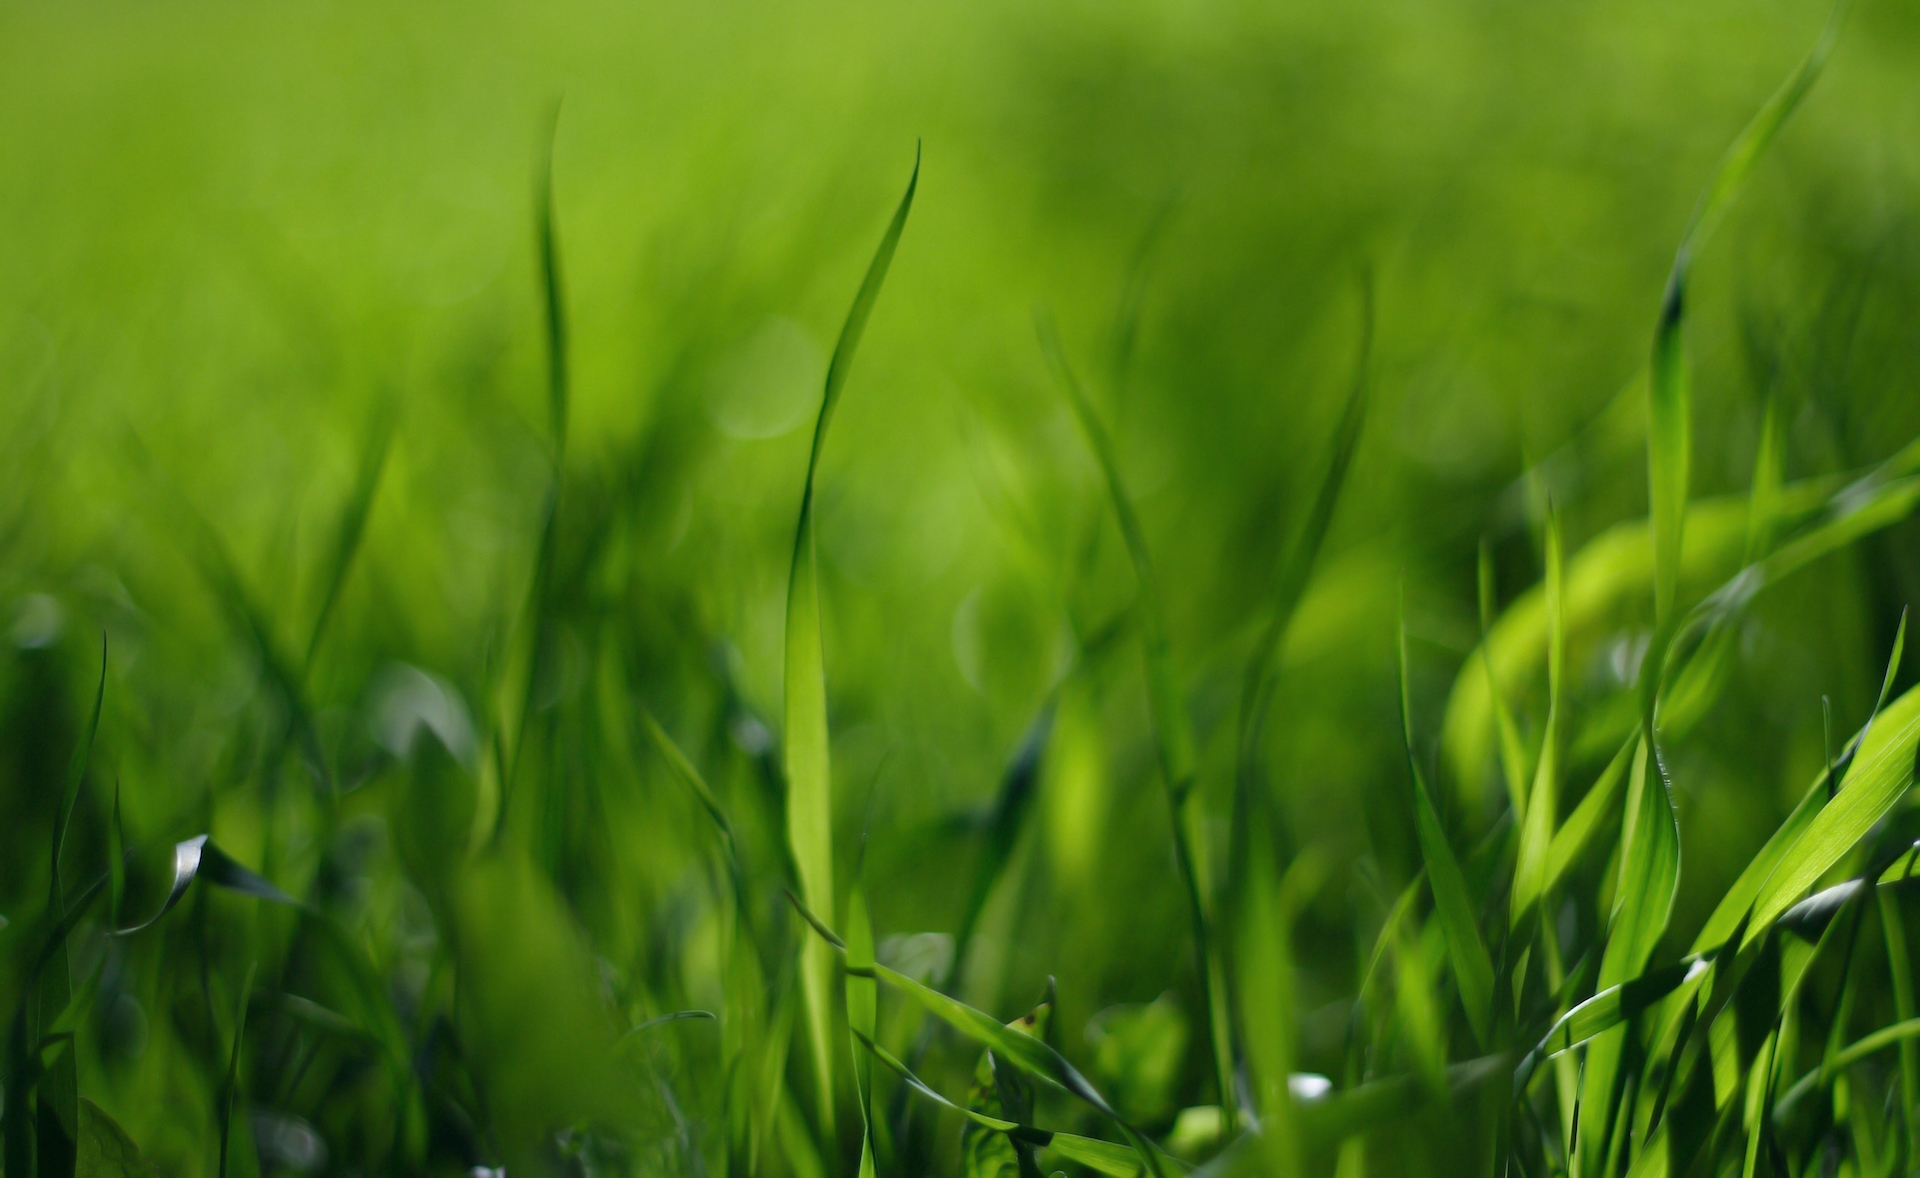 grass_shadows_blurred_hd-wallpaper-47487